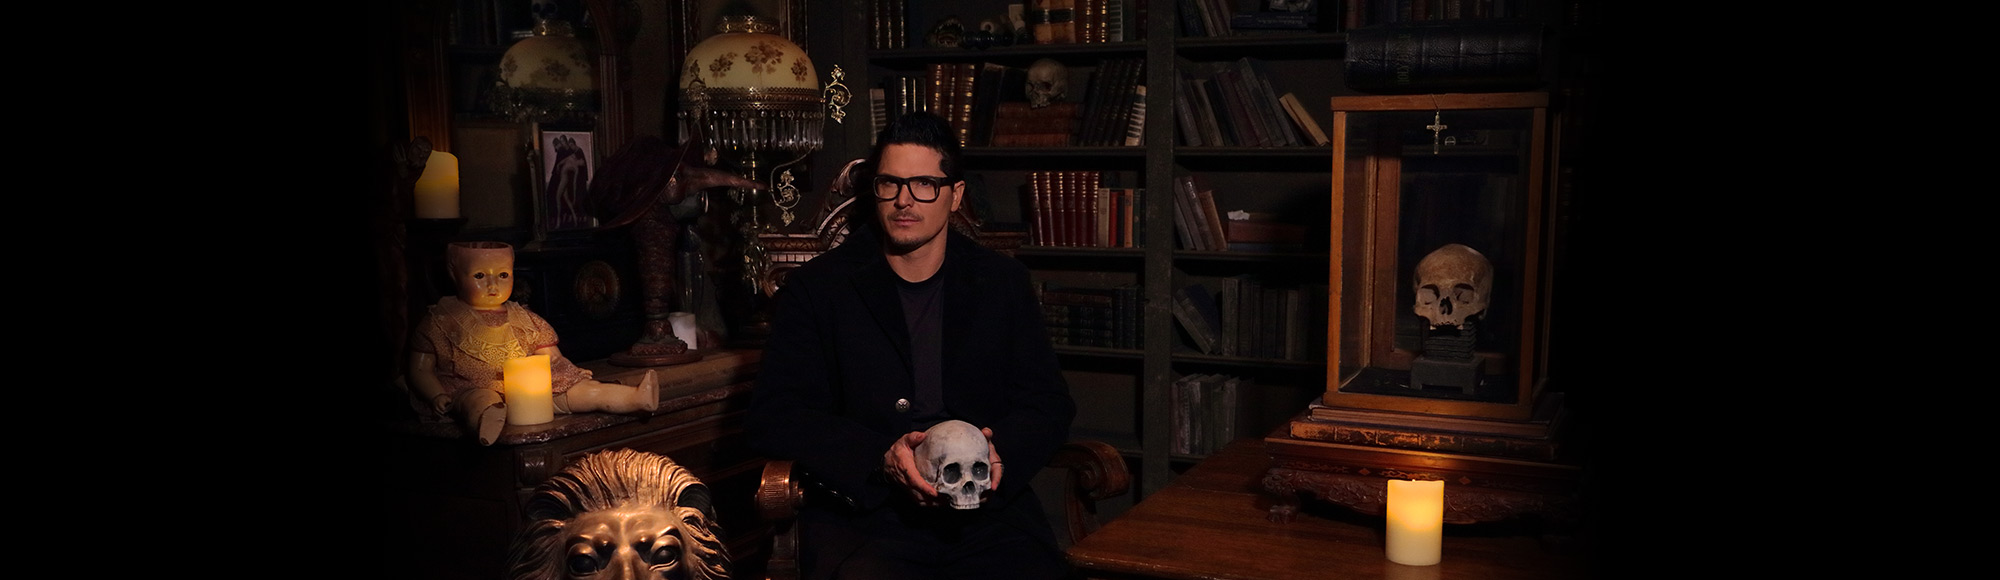 Zak Bagans' The Haunted Museum attraction